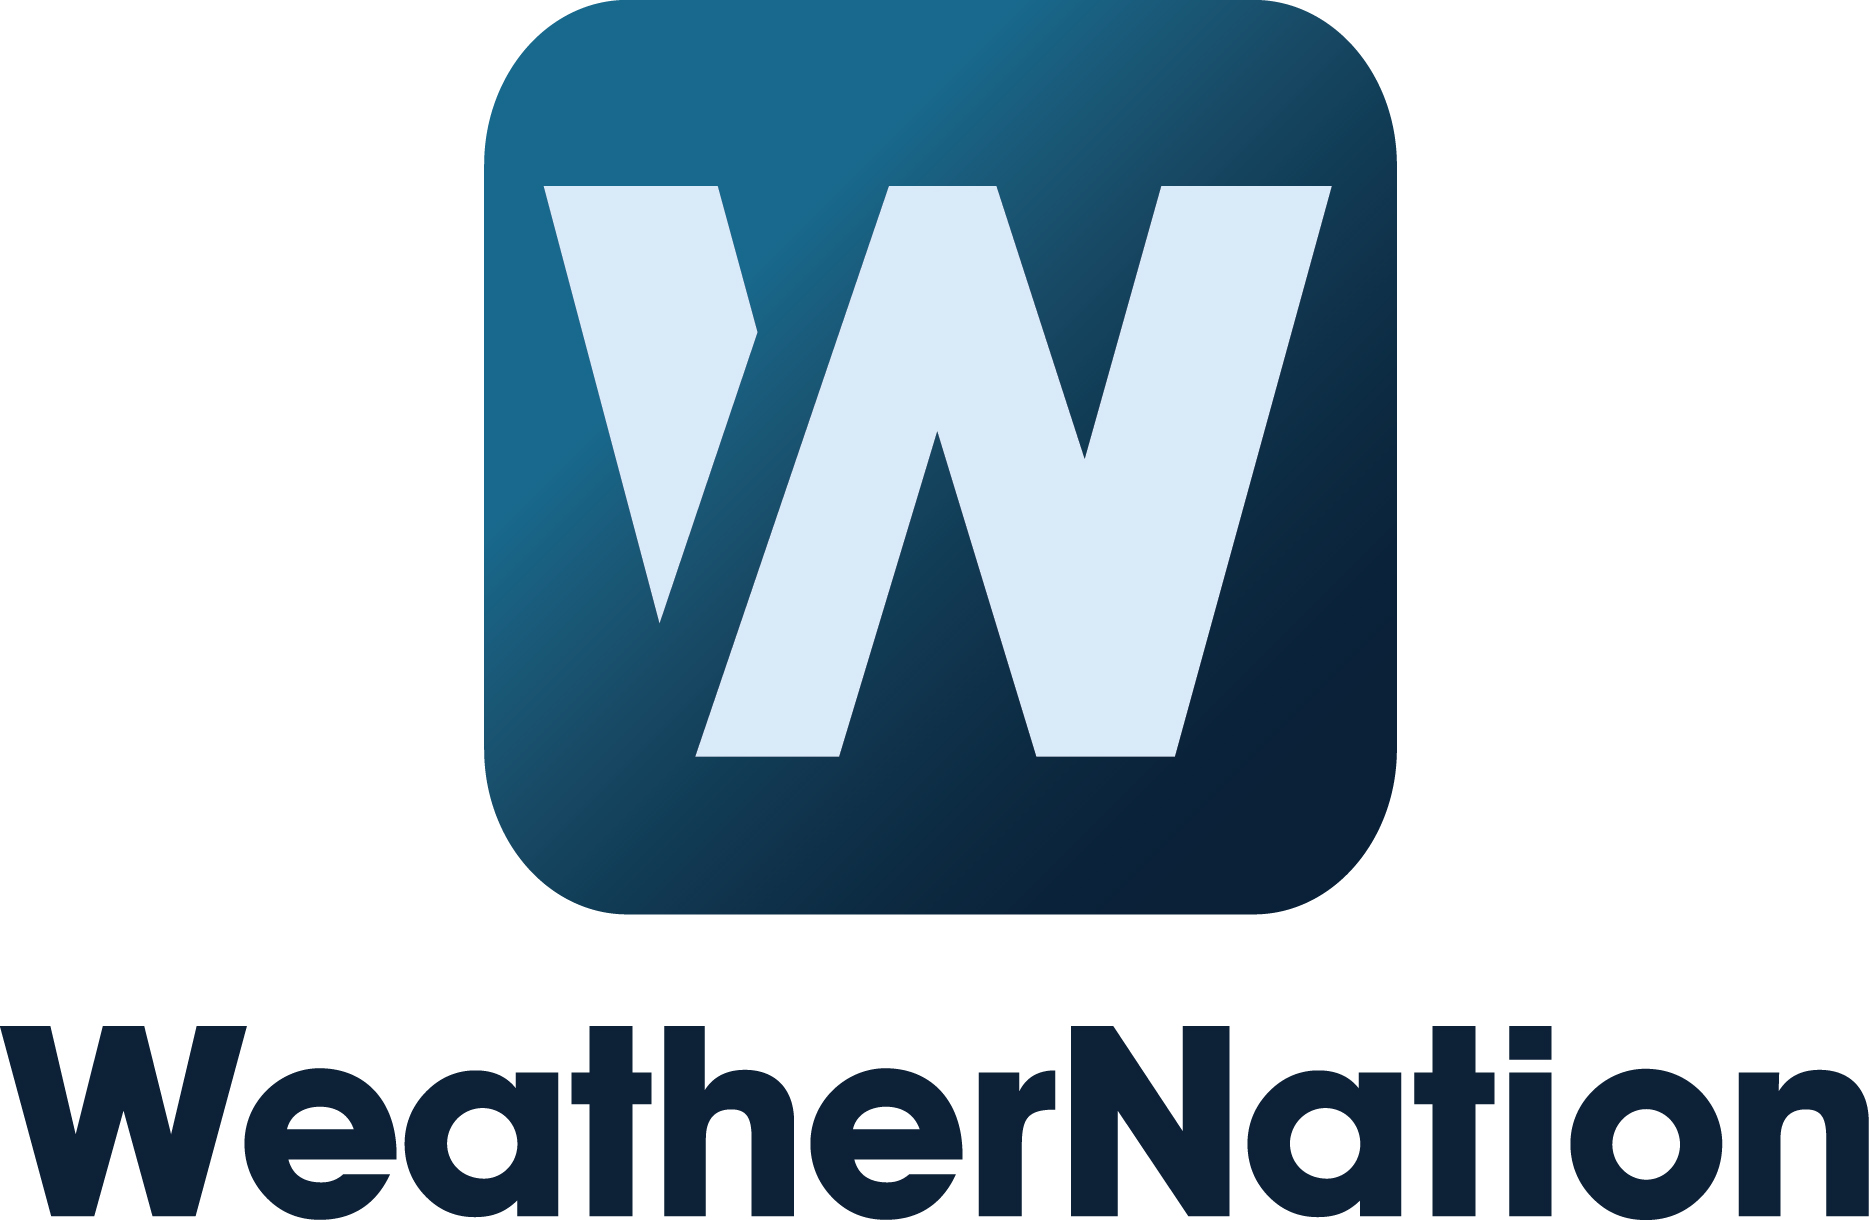 Weathernation Tv Images - Reverse Search